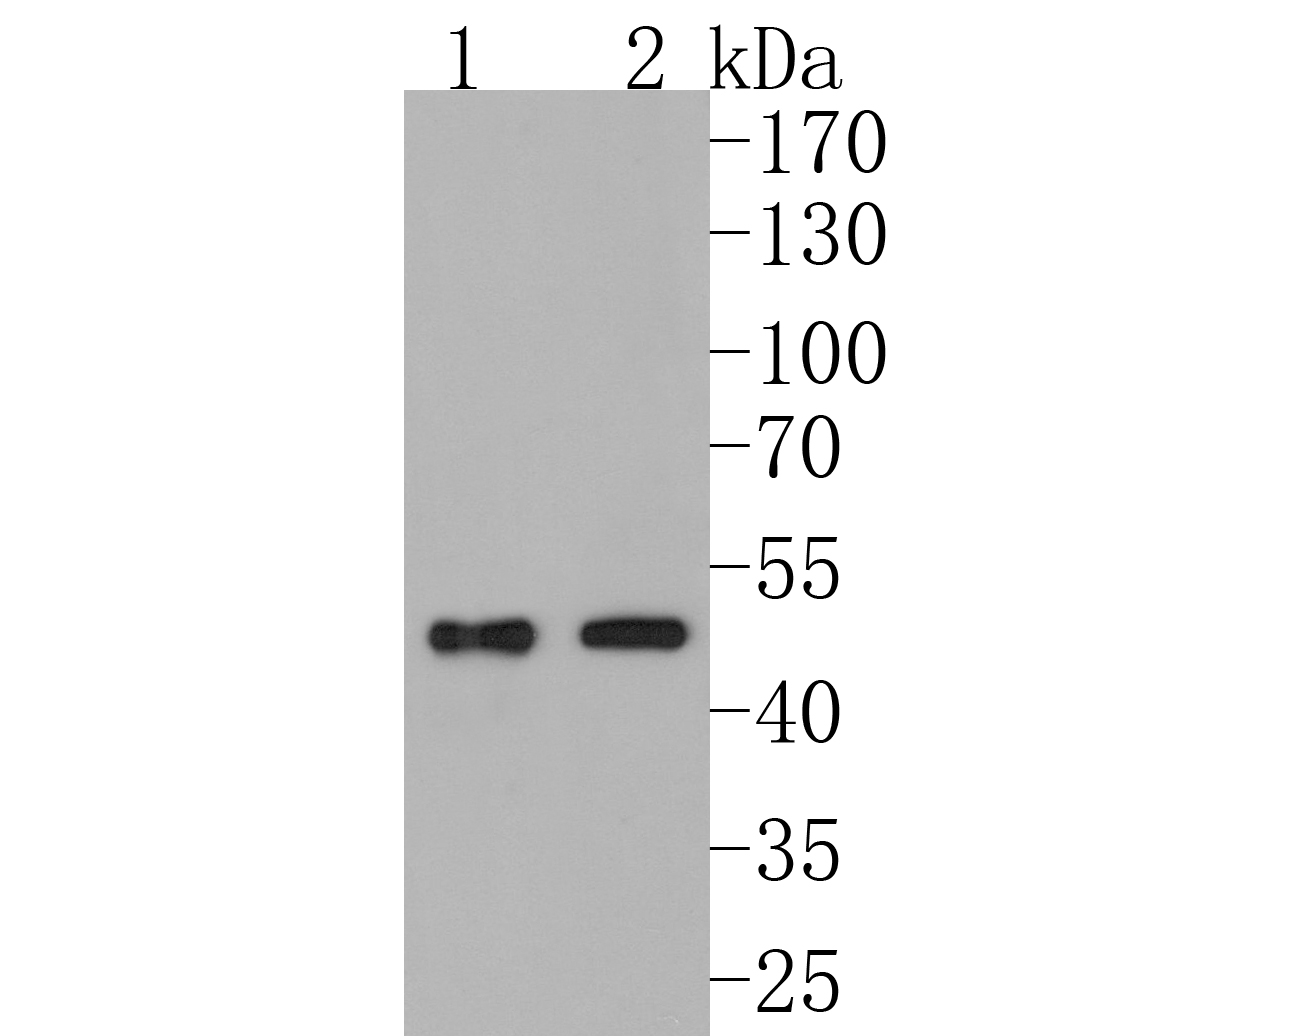 Western blot analysis of PDK1 on different lysates. Proteins were transferred to a PVDF membrane and blocked with 5% BSA in PBS for 1 hour at room temperature. The primary antibody (ET1704-66, 1/500) was used in 5% BSA at room temperature for 2 hours. Goat Anti-Rabbit IgG - HRP Secondary Antibody (HA1001) at 1:5,000 dilution was used for 1 hour at room temperature.<br /> Positive control: <br /> Lane 1: rat heart tissue lysate<br /> Lane 2: mouse heart tissue lysate